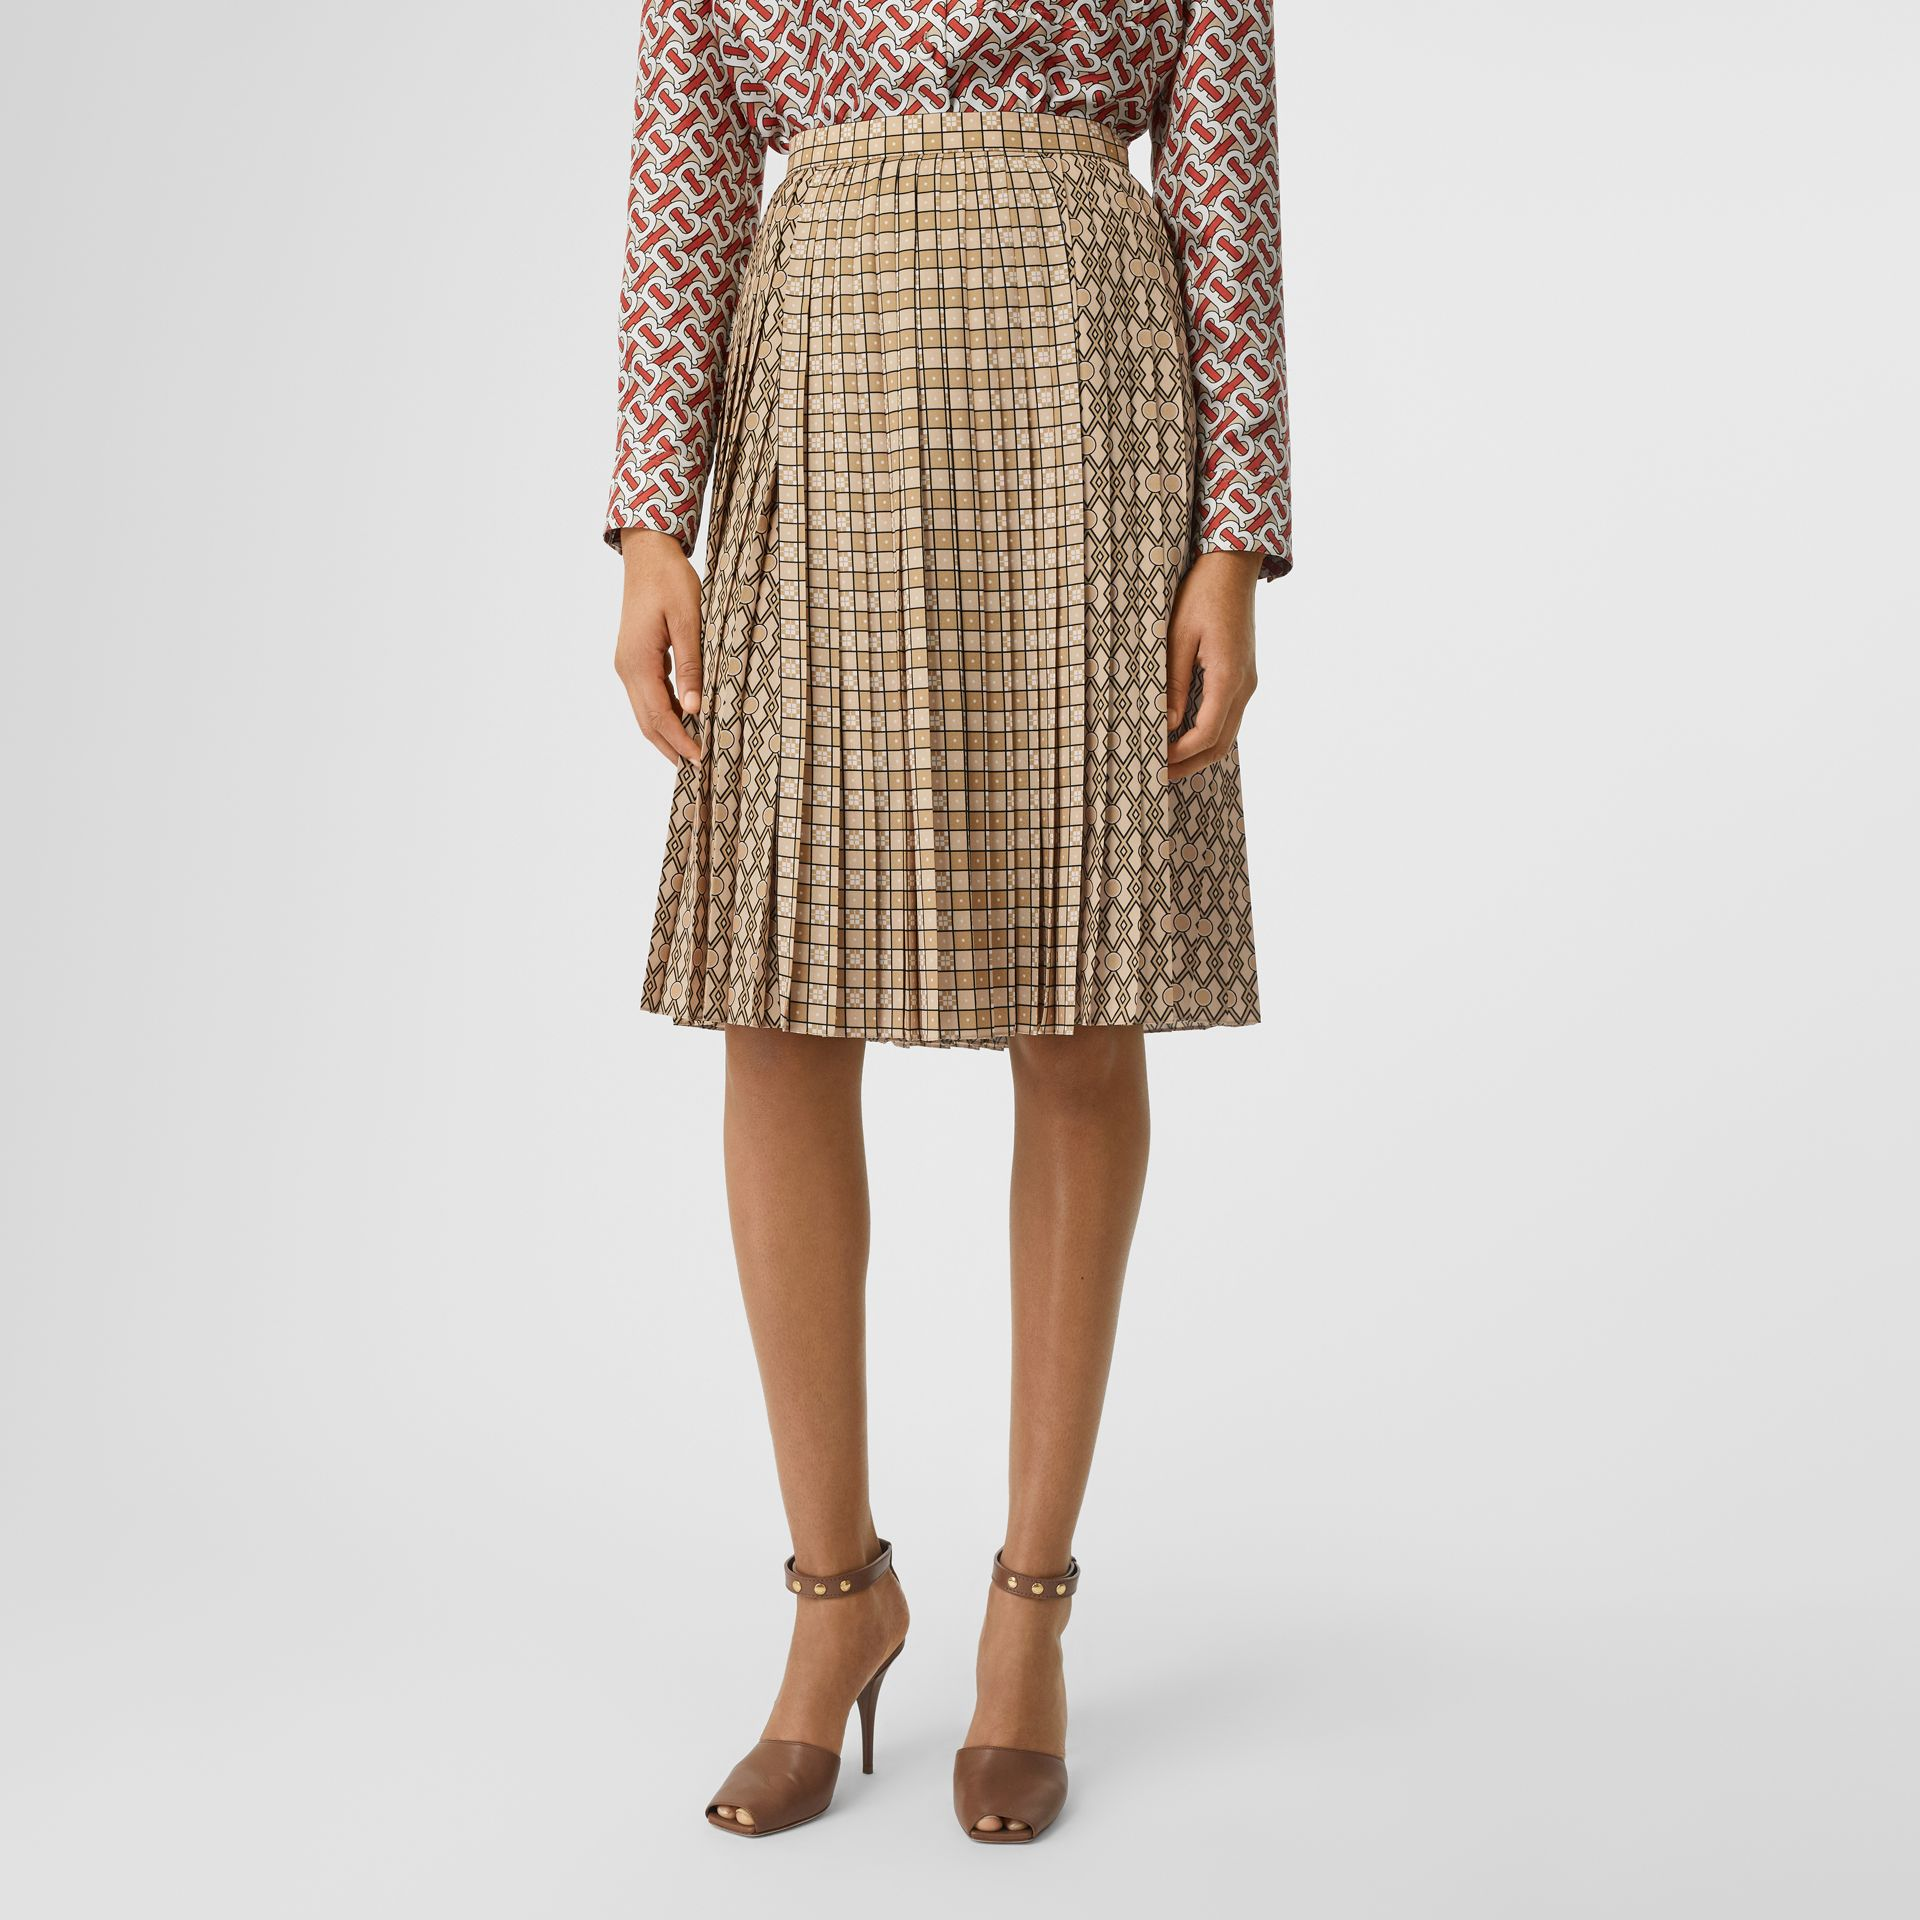 Contrast Graphic Print Pleated Skirt in Latte - Women | Burberry Hong Kong - gallery image 4